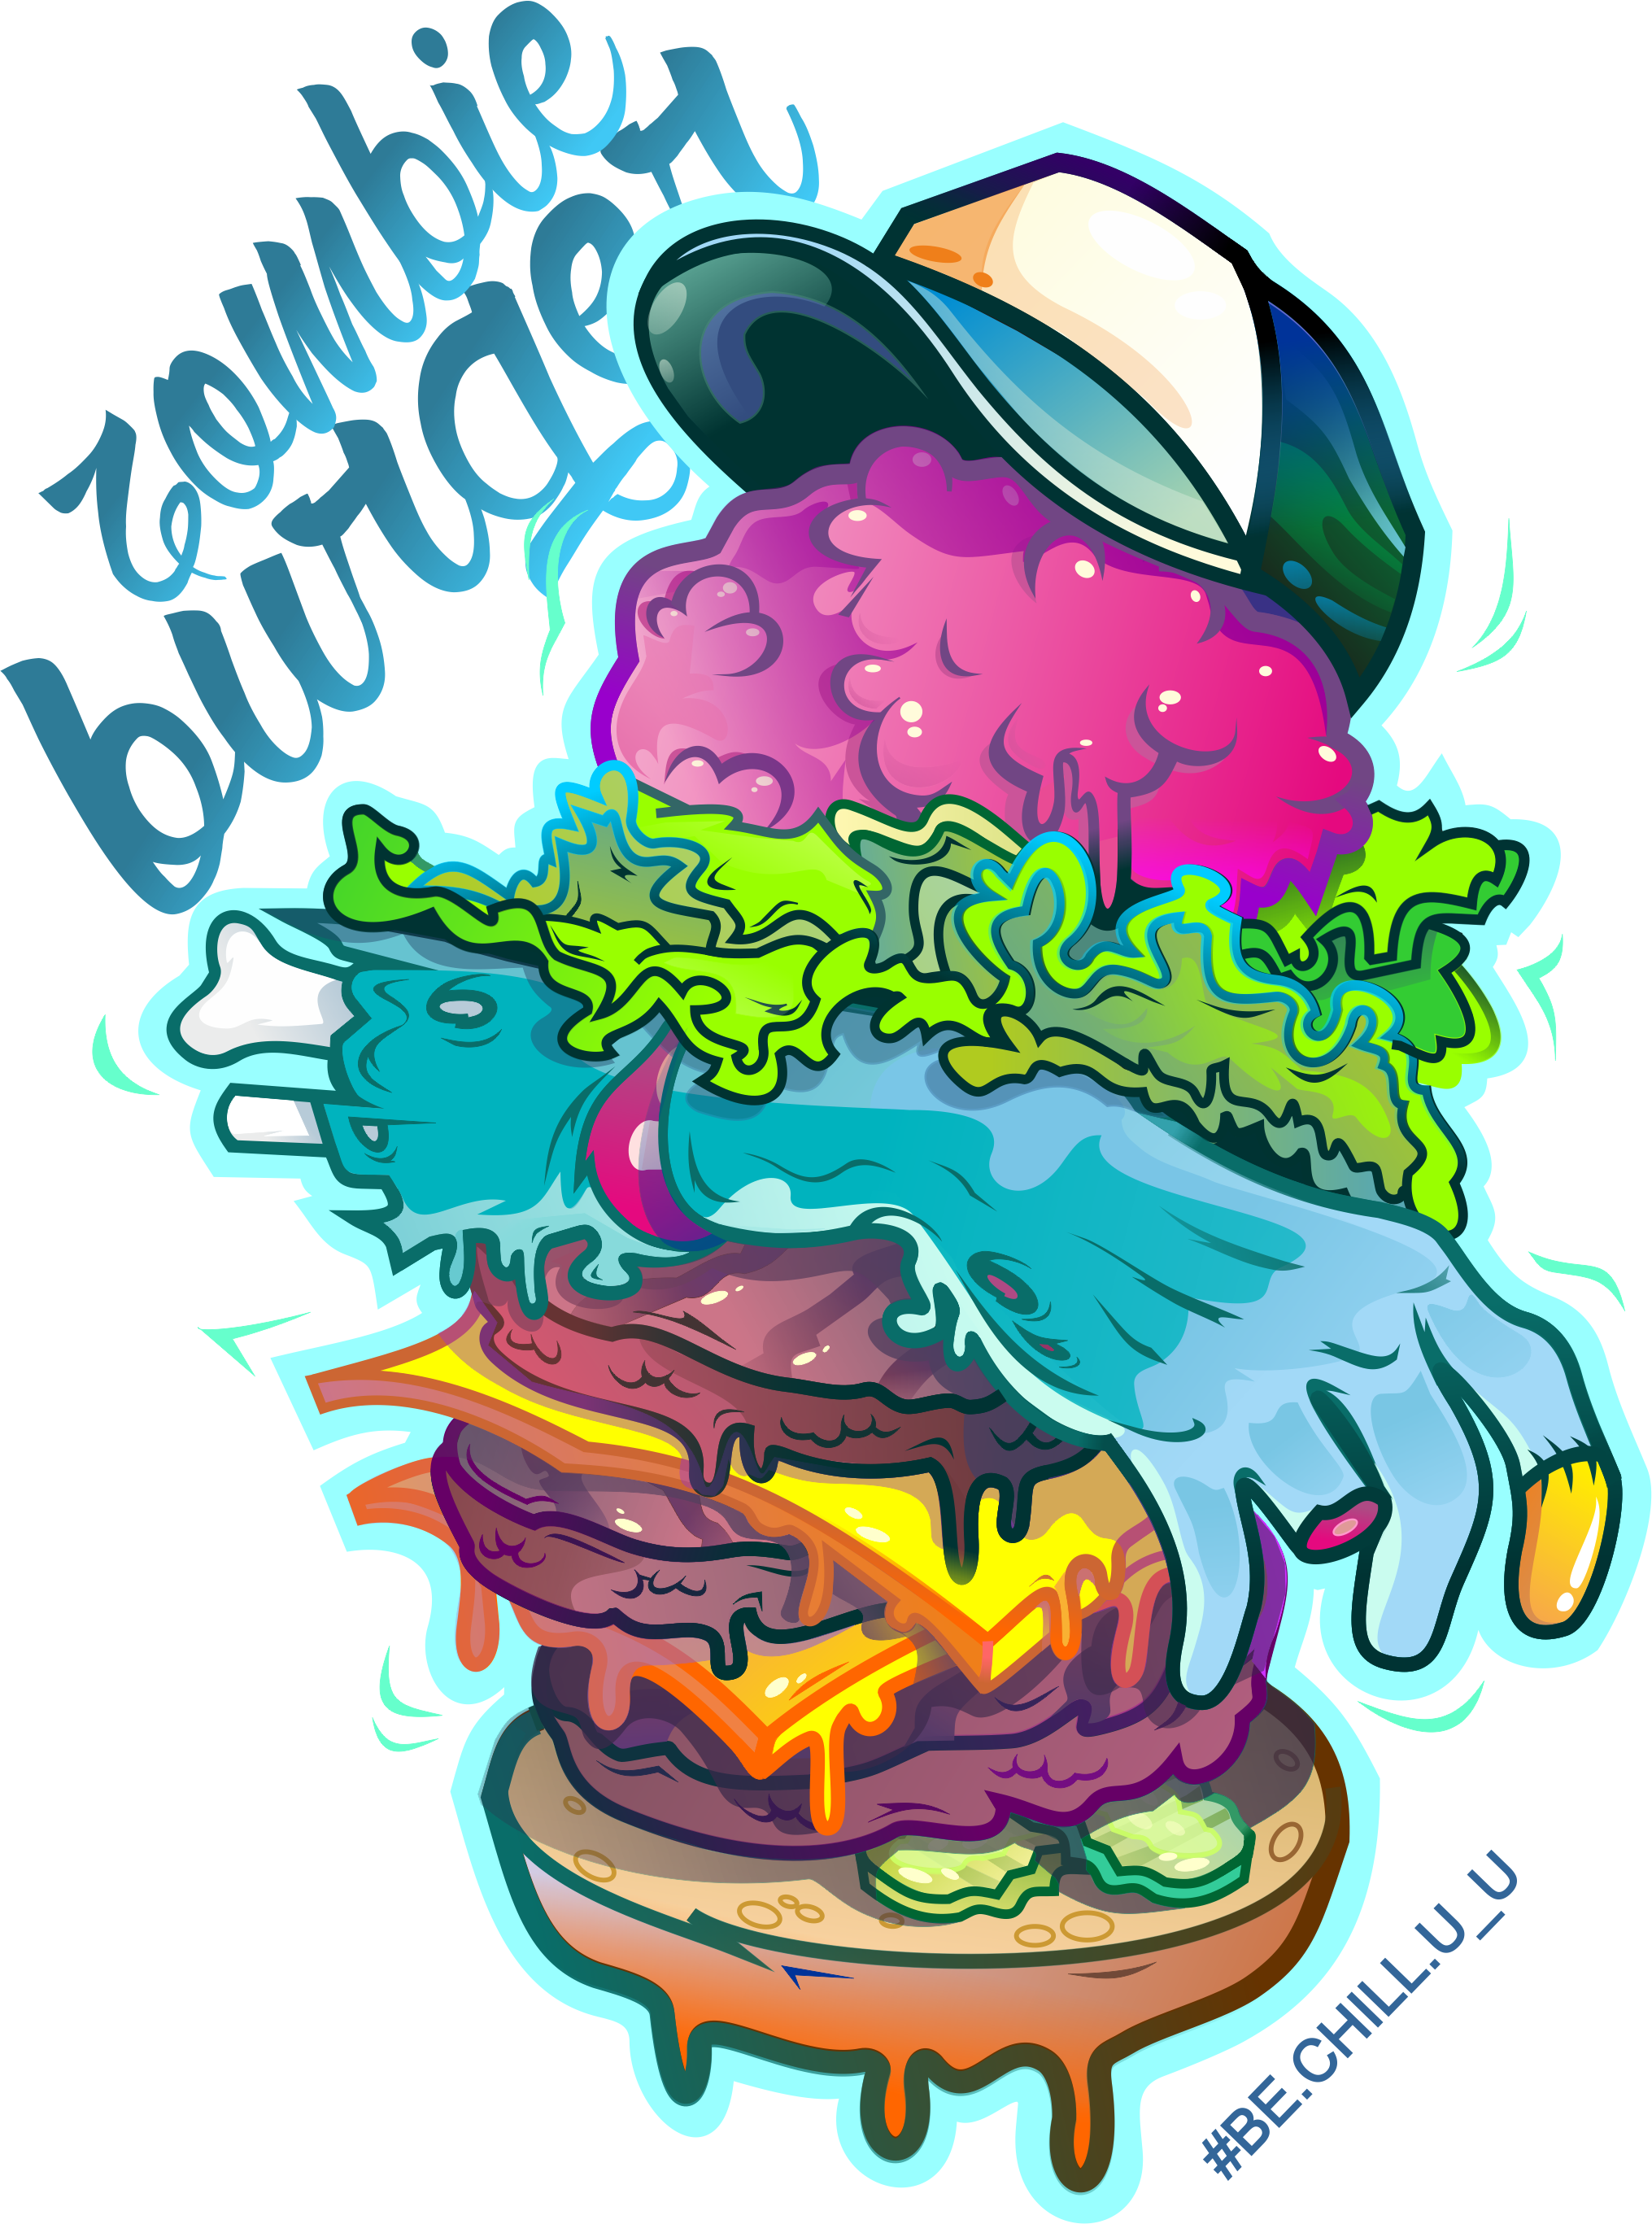 Zombie clipart vector. Burger by danyadevushkin on